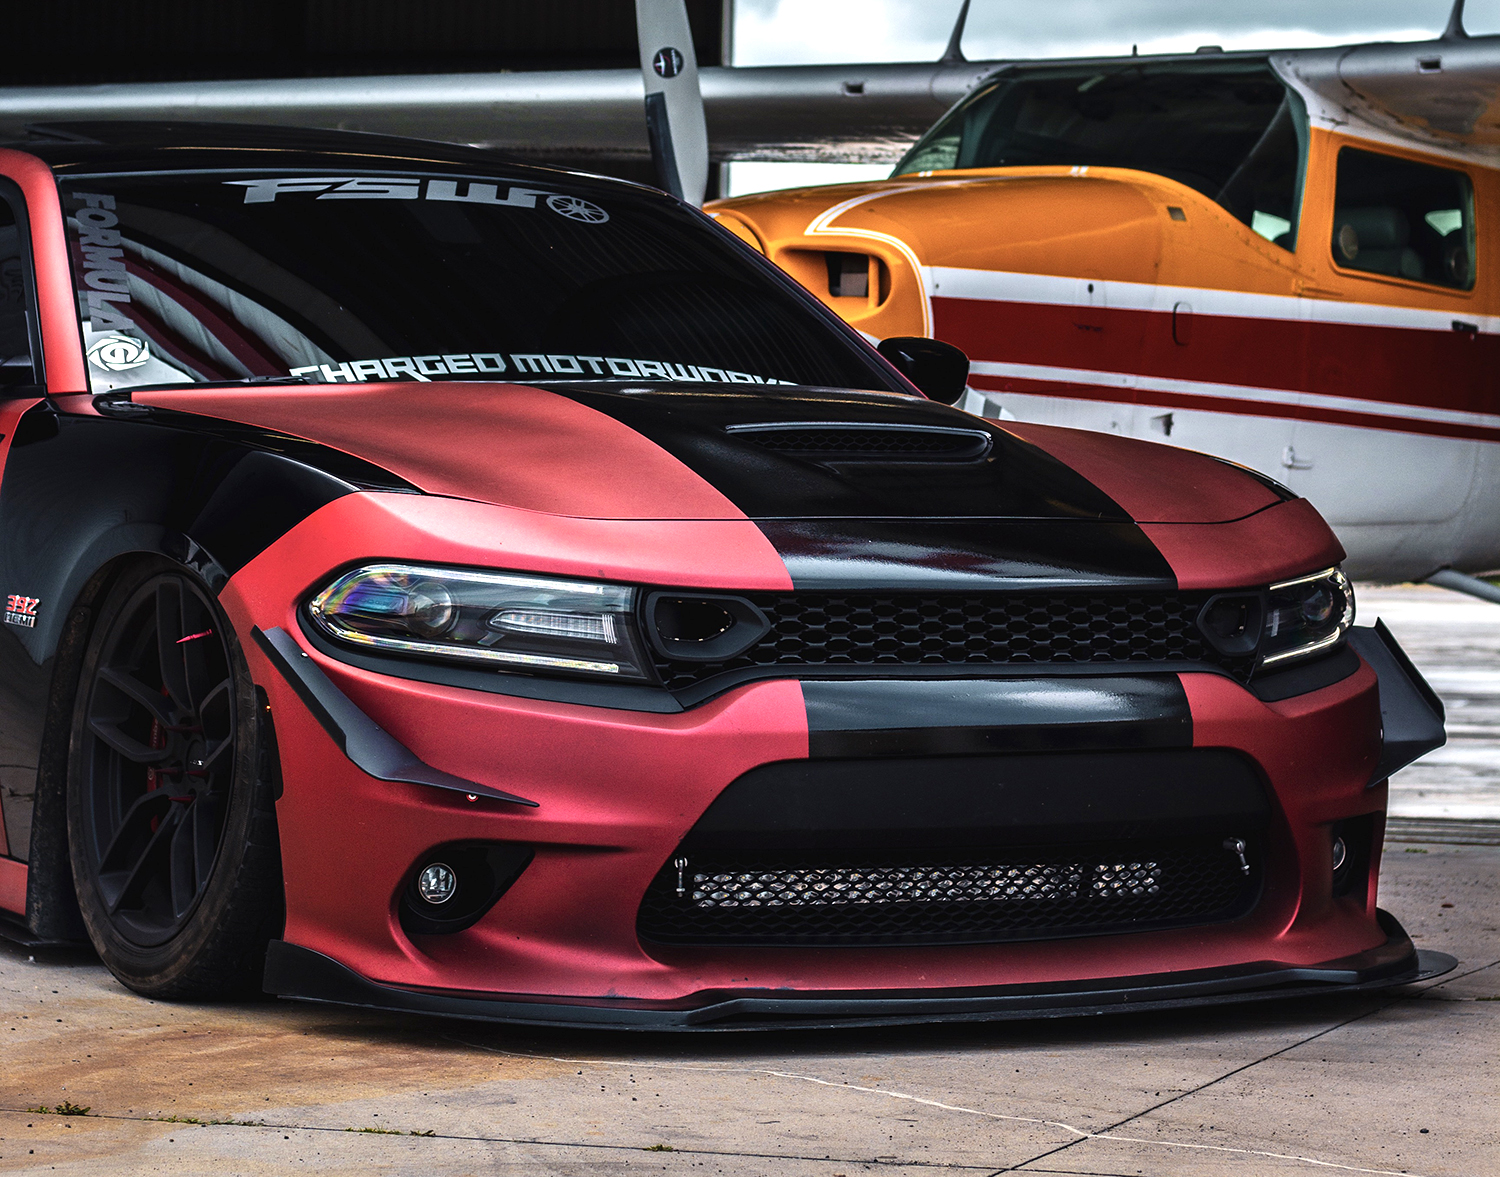 Dodge-Charger-F146-2